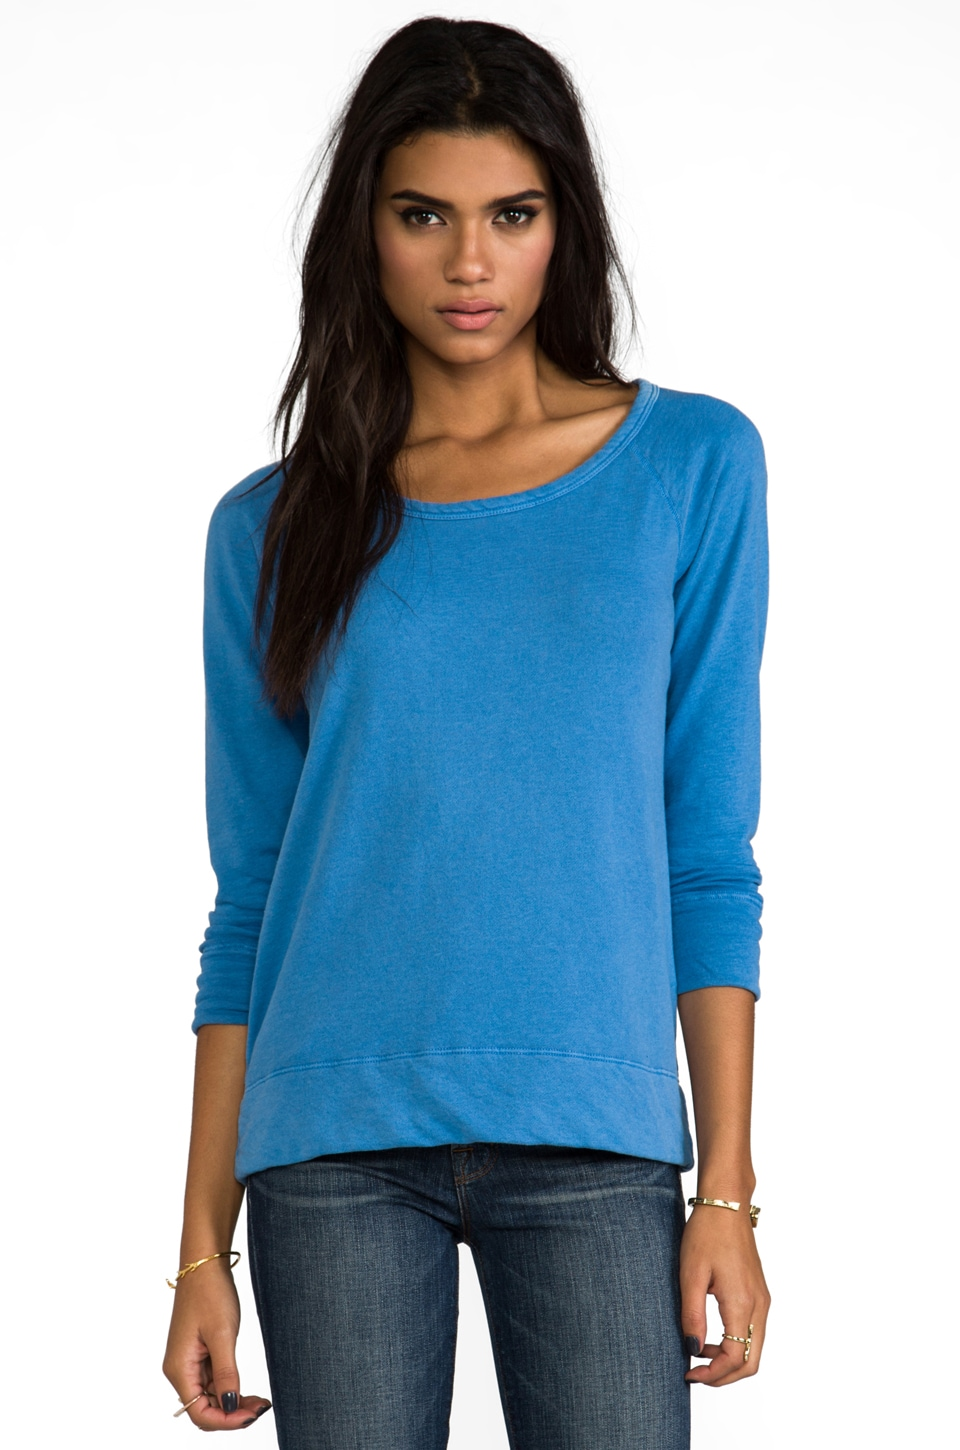 James Perse Vinatage Cotton Raglan Sweatshirt in Hume